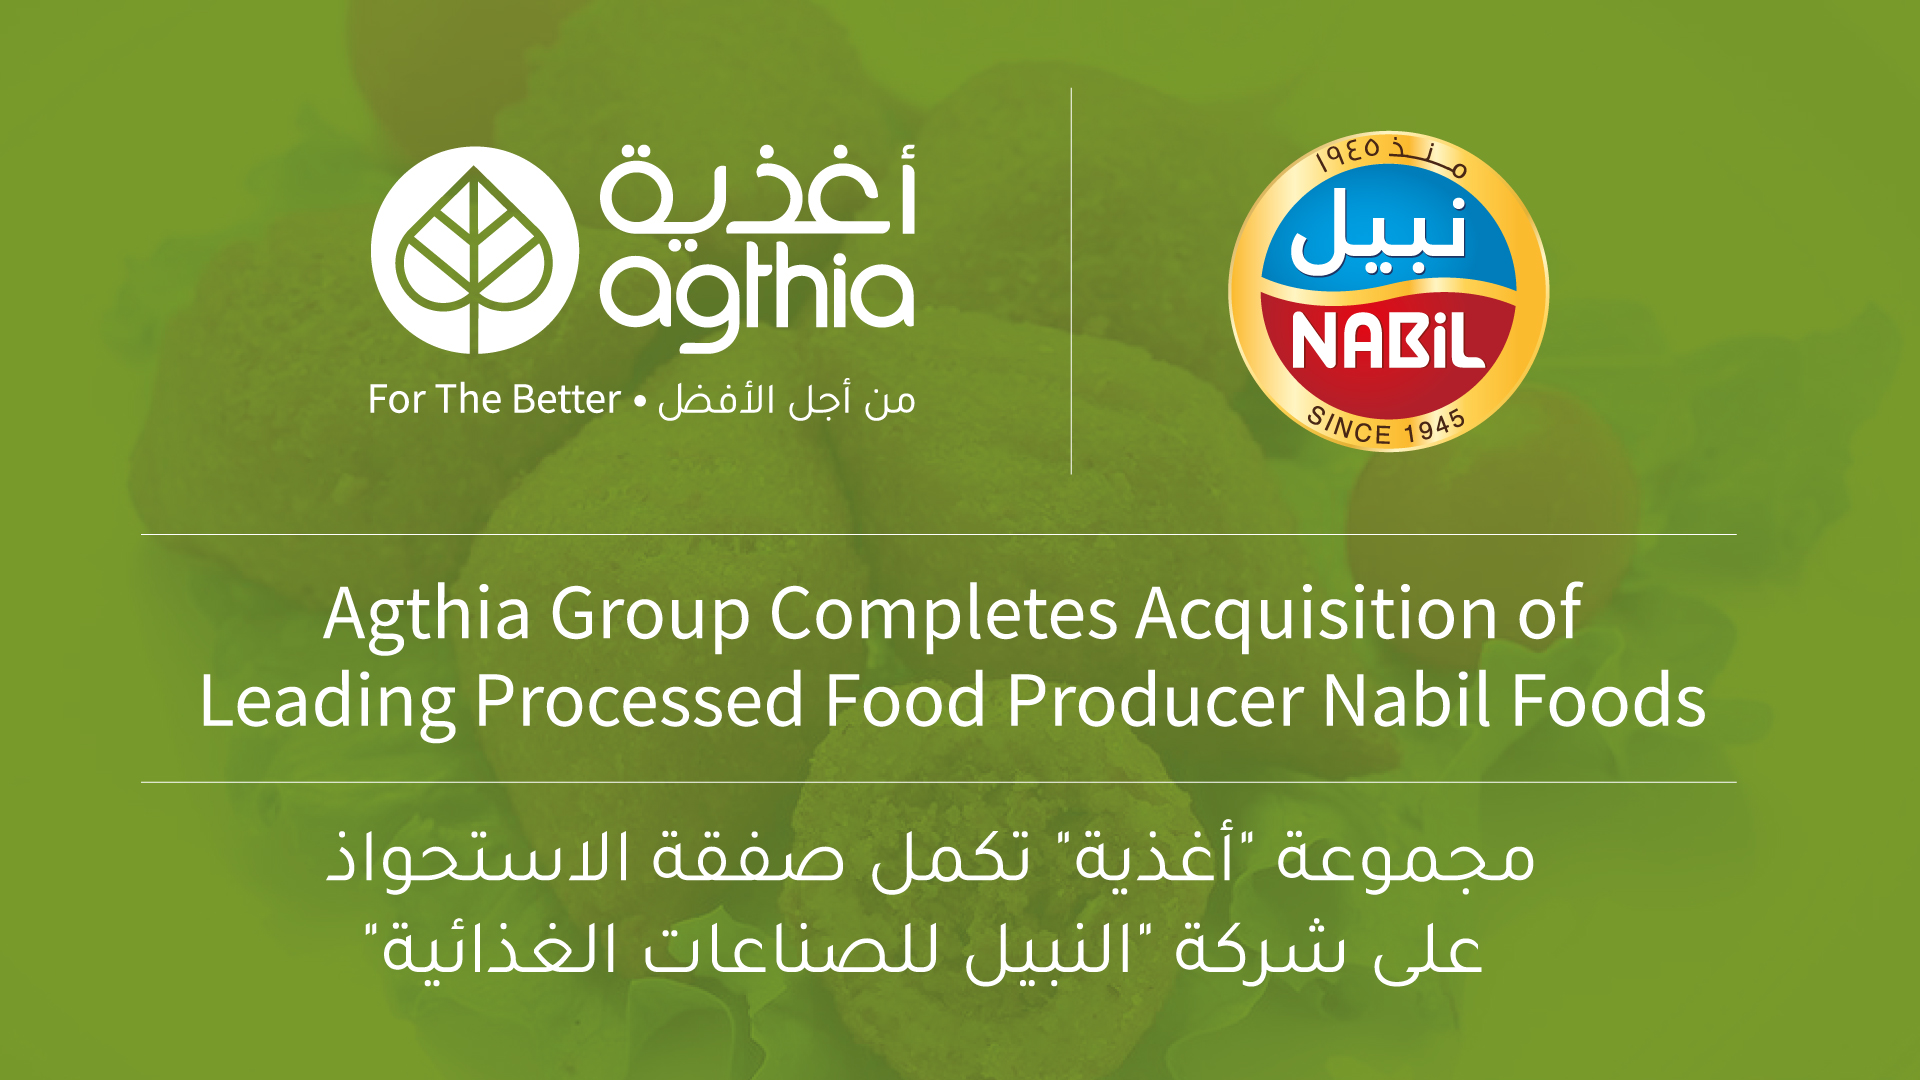 Agthia Group Completes Acquisition of Leading Processed Food Producer Nabil Foods